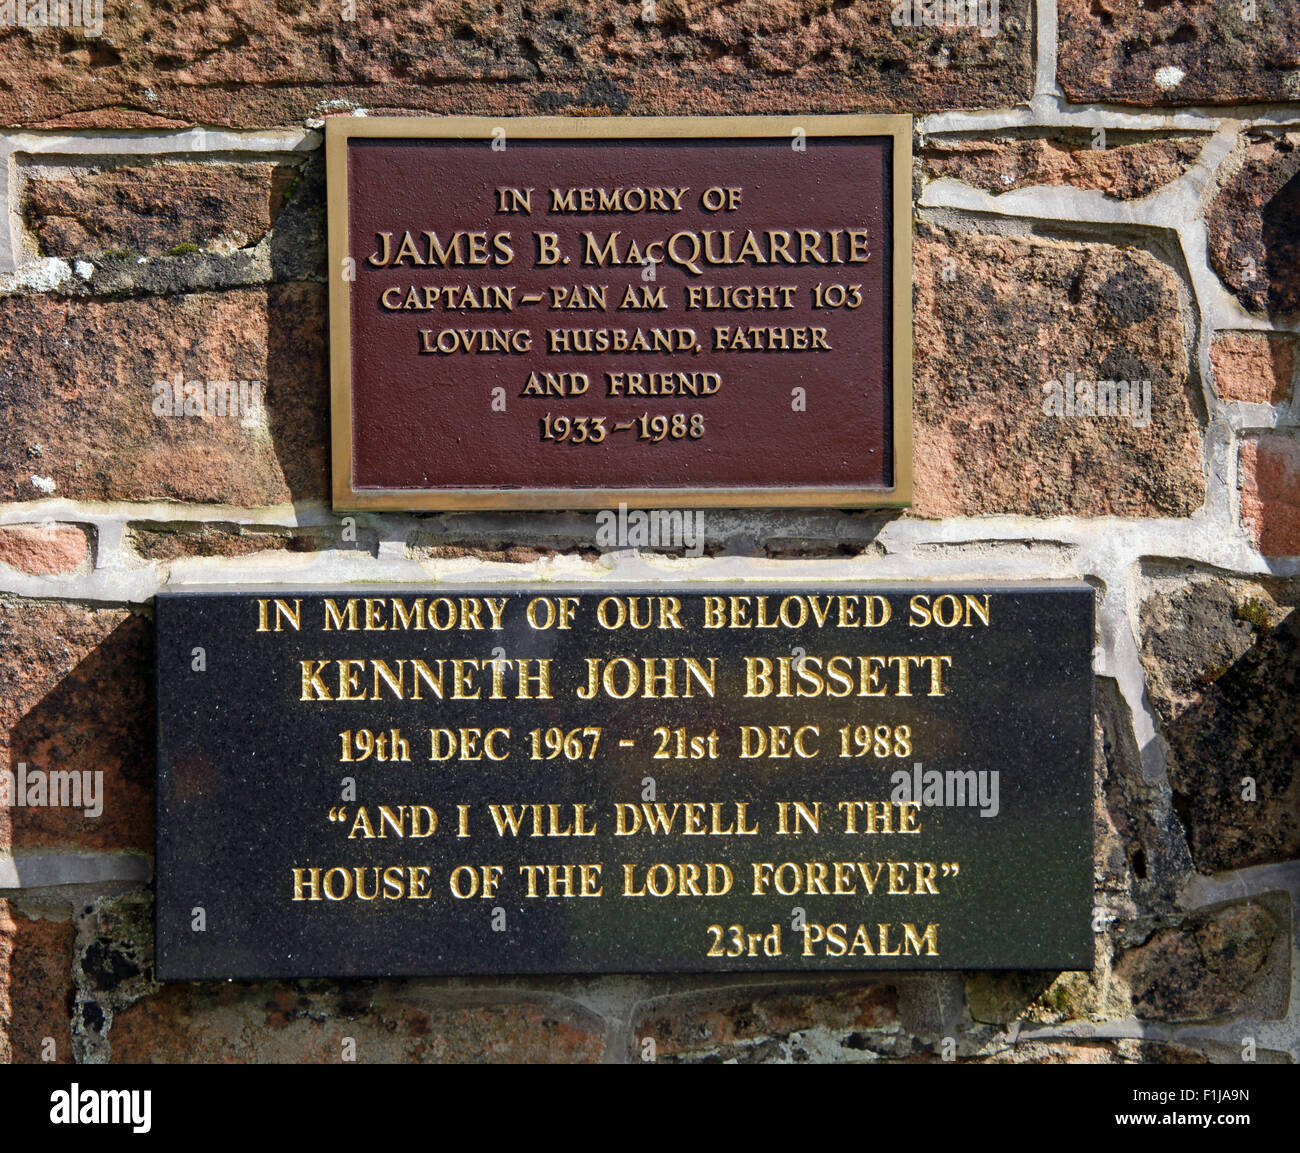 B. MacQuarrie Captain Kenneth John Bissett,Scotland,Lodge,Visitors,Centre,DLVC,Trust,Lockerbie,Memorial,Remembrance,Scotland,Victims,Pan,Am,PanAm,flight,103,bomb,bombing,terrorist,December,1988,attack,crash,dead,site,21/12/1988,270,victims,Scottish,Town,conspiracy,blast,Tundergarth,Room,New York,GoTonySmith,Lodge,Visitors,Centre,DLVC,Trust,Lockerbie,Memorial,Scotland,Victims,Pan,Am,PanAm,flight,103,bomb,bombing,terrorist,December,1988,attack,crash,dead,site,21/12/1988,270,victims,Scottish,Town,conspiracy,blast,Tundergarth,Room,garden,of,Dryfesdale,Cemetery,news,Cultural,understanding,remembering,innocent,transatlantic,Frankfurt,Detroit,Libyan,Libya,Colonel Muammar Gaddafi,civil,case,compensation,terrorism,PA103,30,30years,years,Syracuse,University,SU,family,collections,Story,Archive,Archives,40,35,Timeline,saga,disaster,air,Scholars,program,programs,remembrance,Clipper Maid of the Seas,N739PA,Boeing,727,plane,aircraft,Scotland,UK,United Kingdom,GB,Great Britain,resting,place,Buy Pictures of,Buy Images Of,New York,al megrahi,30 Years